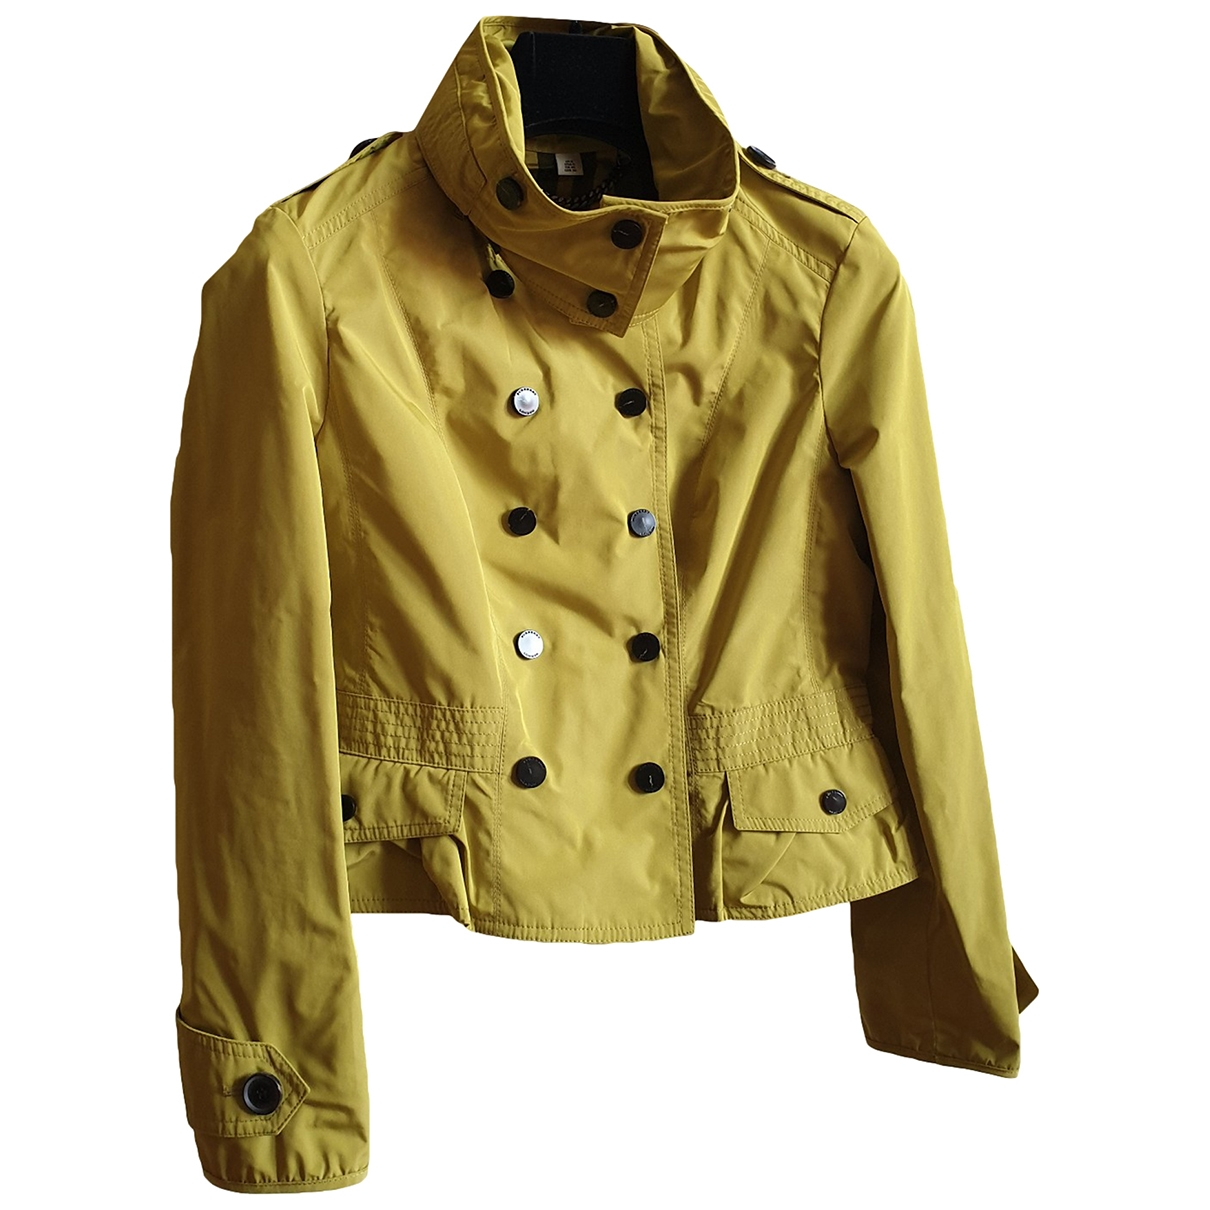 Burberry \N Yellow jacket for Women 40 IT